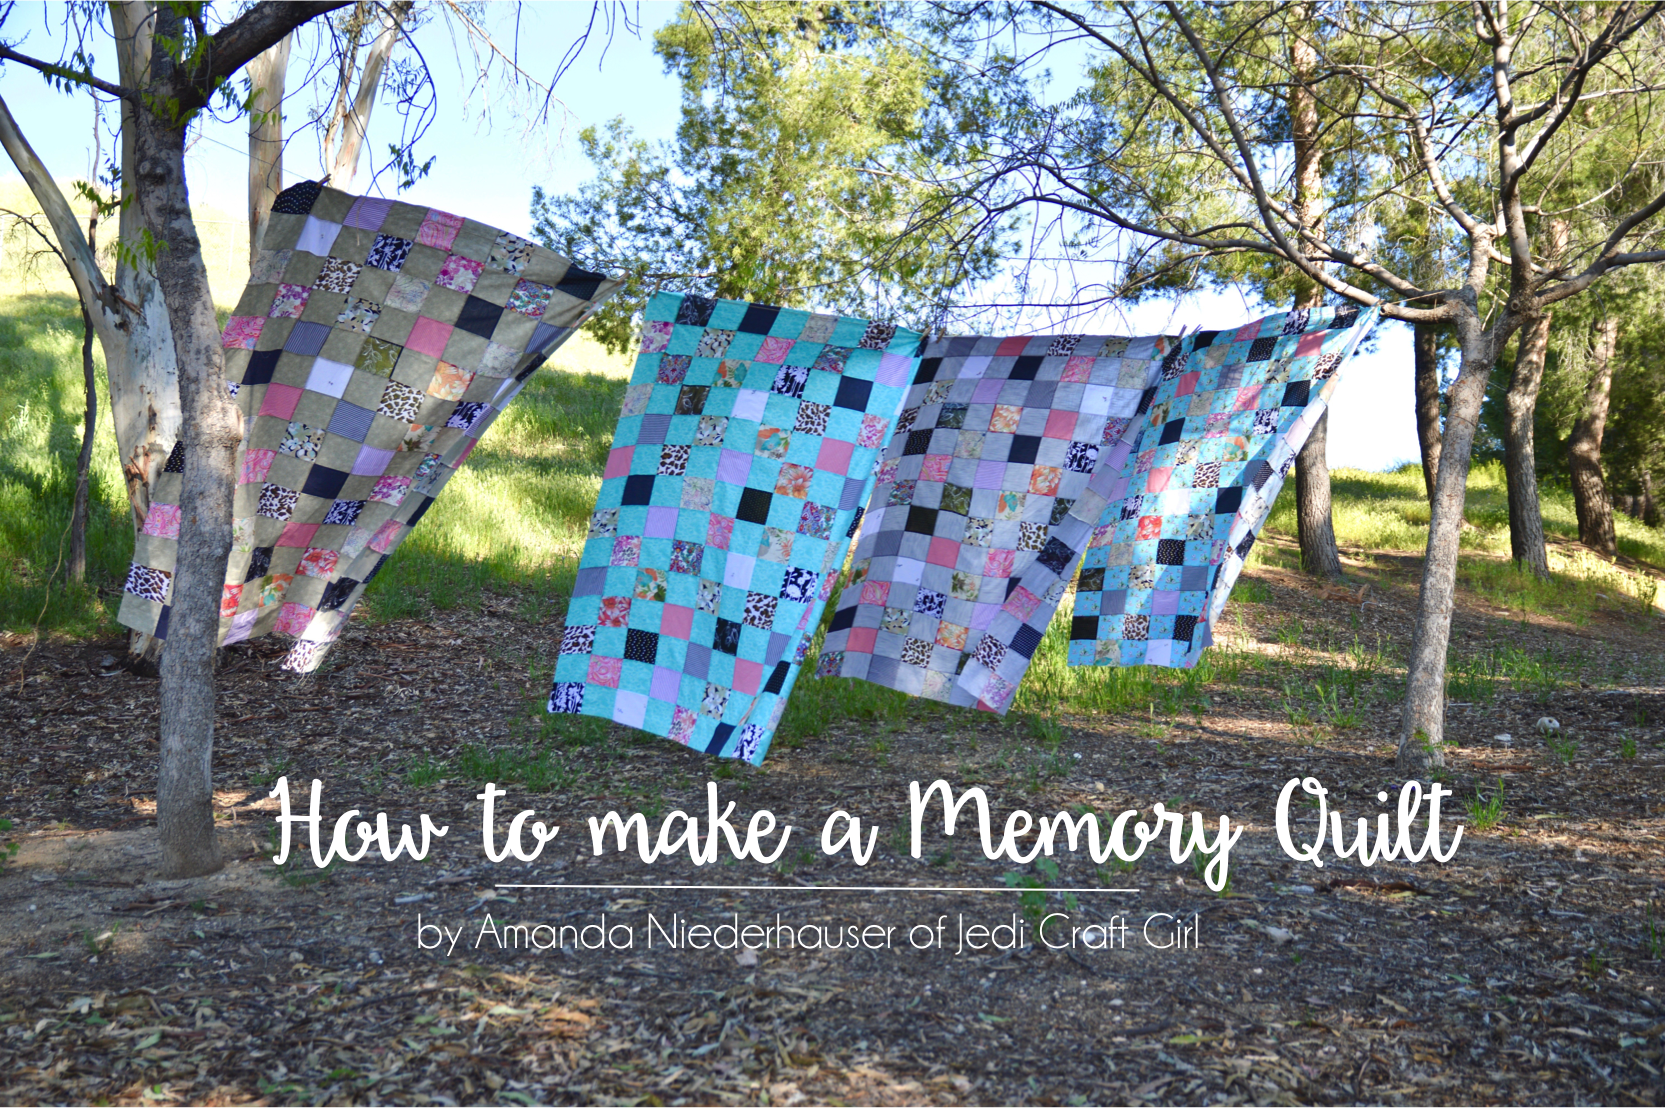 http://www.jedicraftgirl.com/wp-content/uploads/2017/03/memory-quilt-tutorial.png